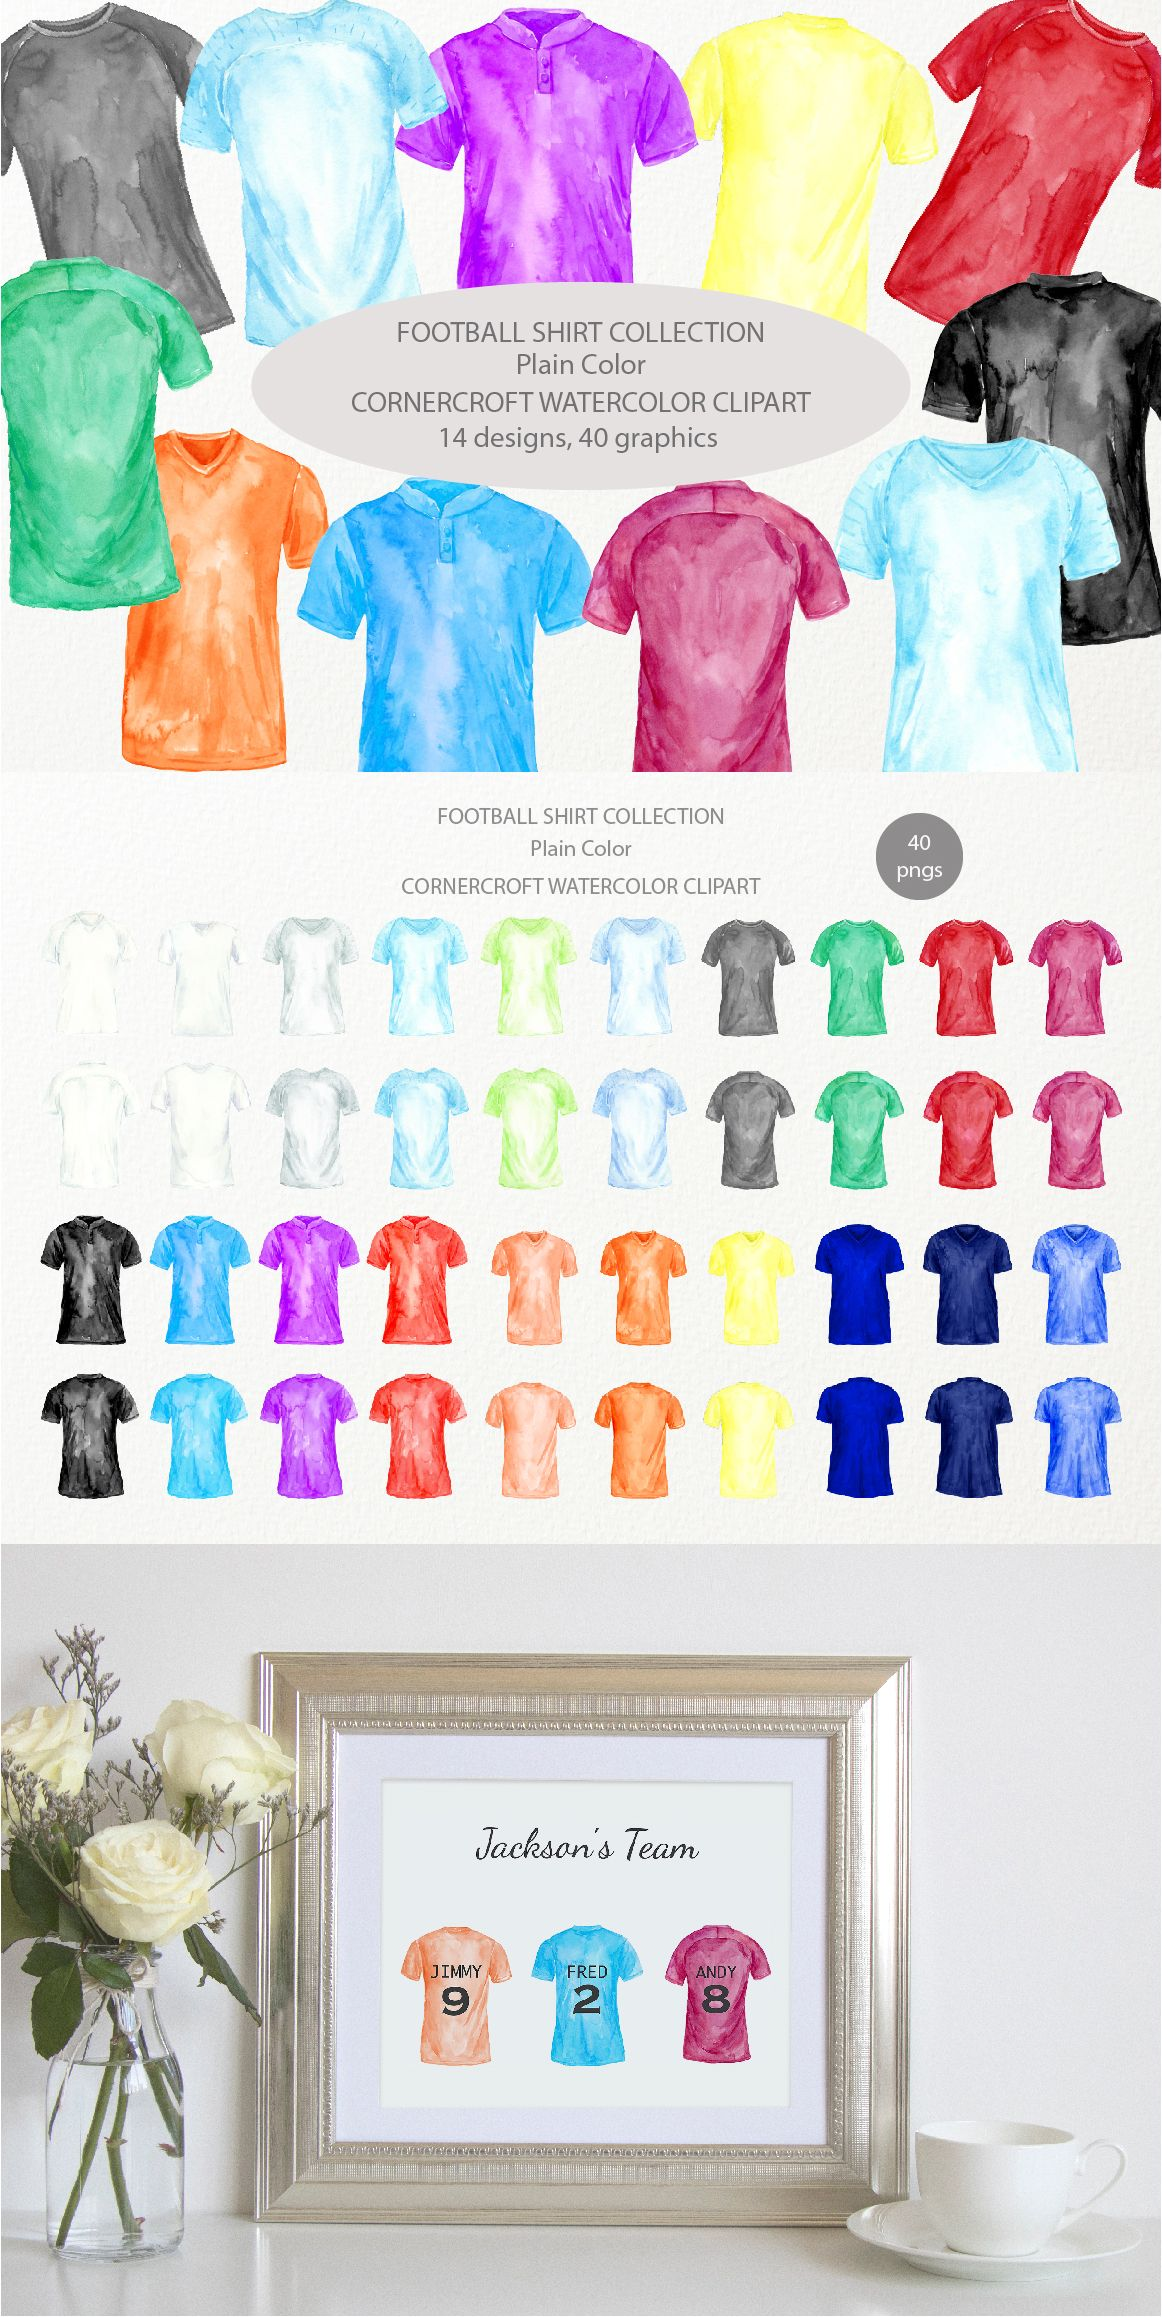 Watercolor Football Shirts In Plain Color Soccer Shirt